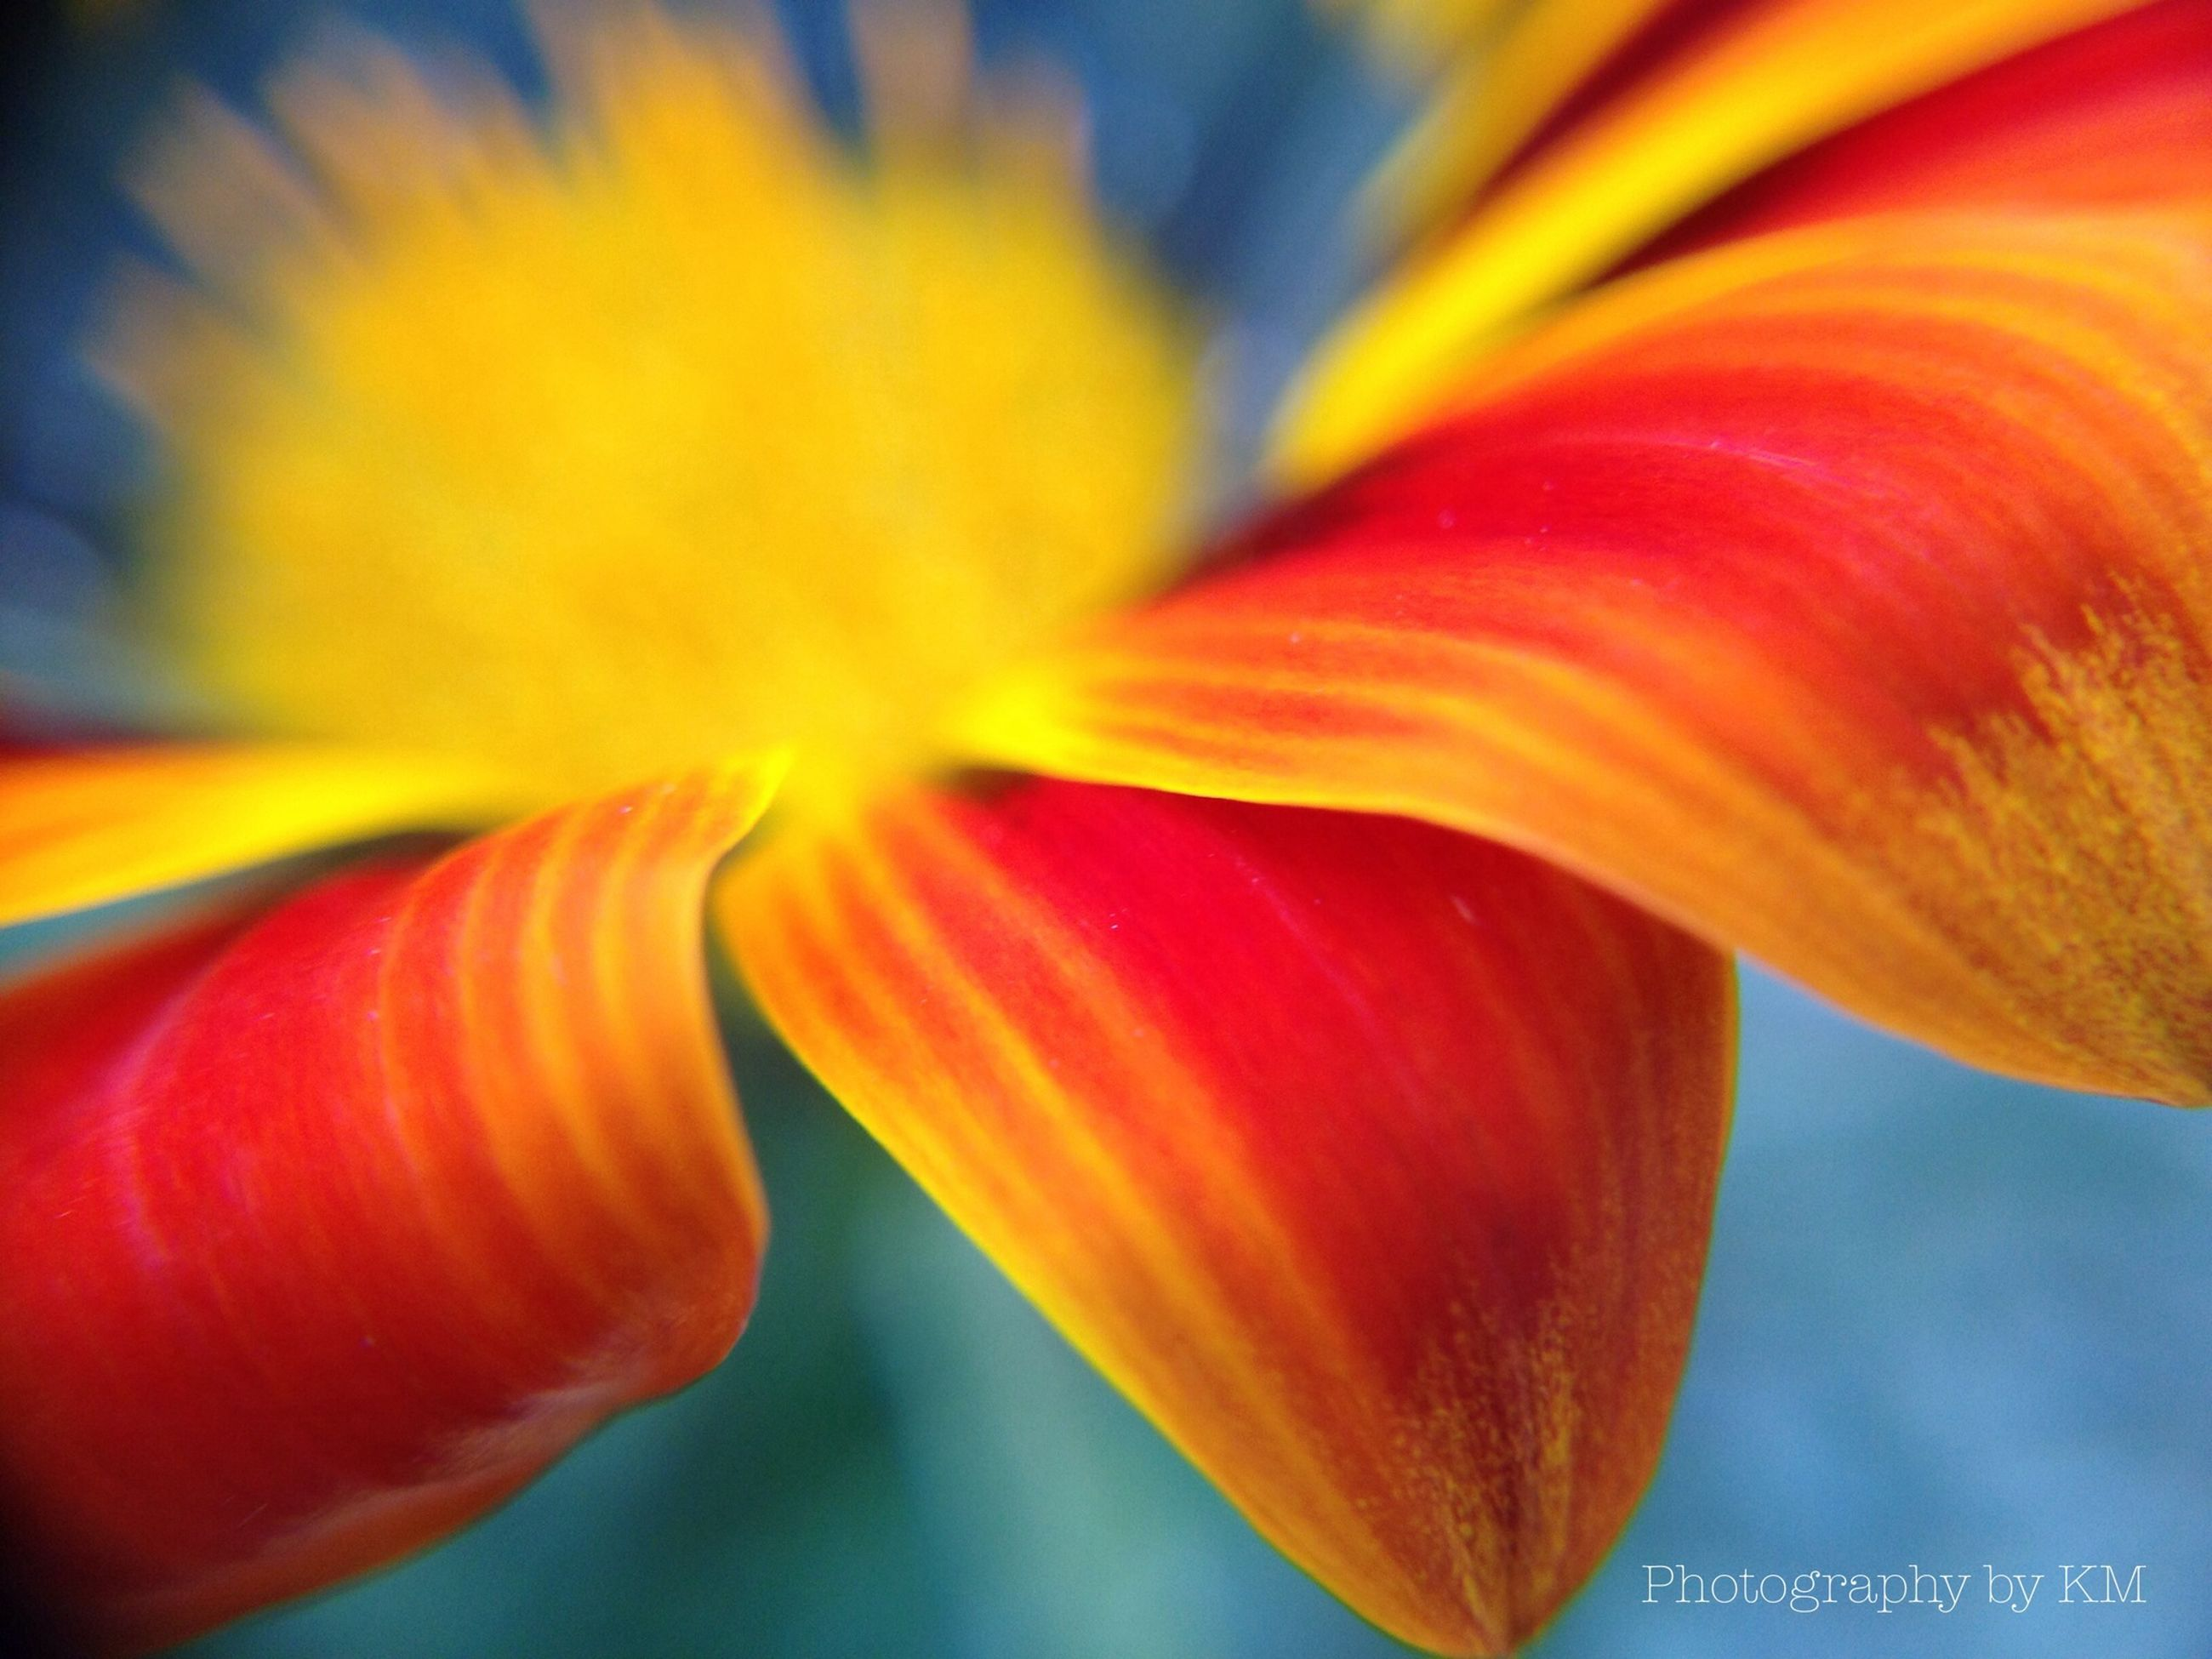 petal, flower, freshness, close-up, orange color, flower head, fragility, yellow, beauty in nature, red, nature, growth, vibrant color, single flower, selective focus, focus on foreground, stamen, backgrounds, full frame, macro